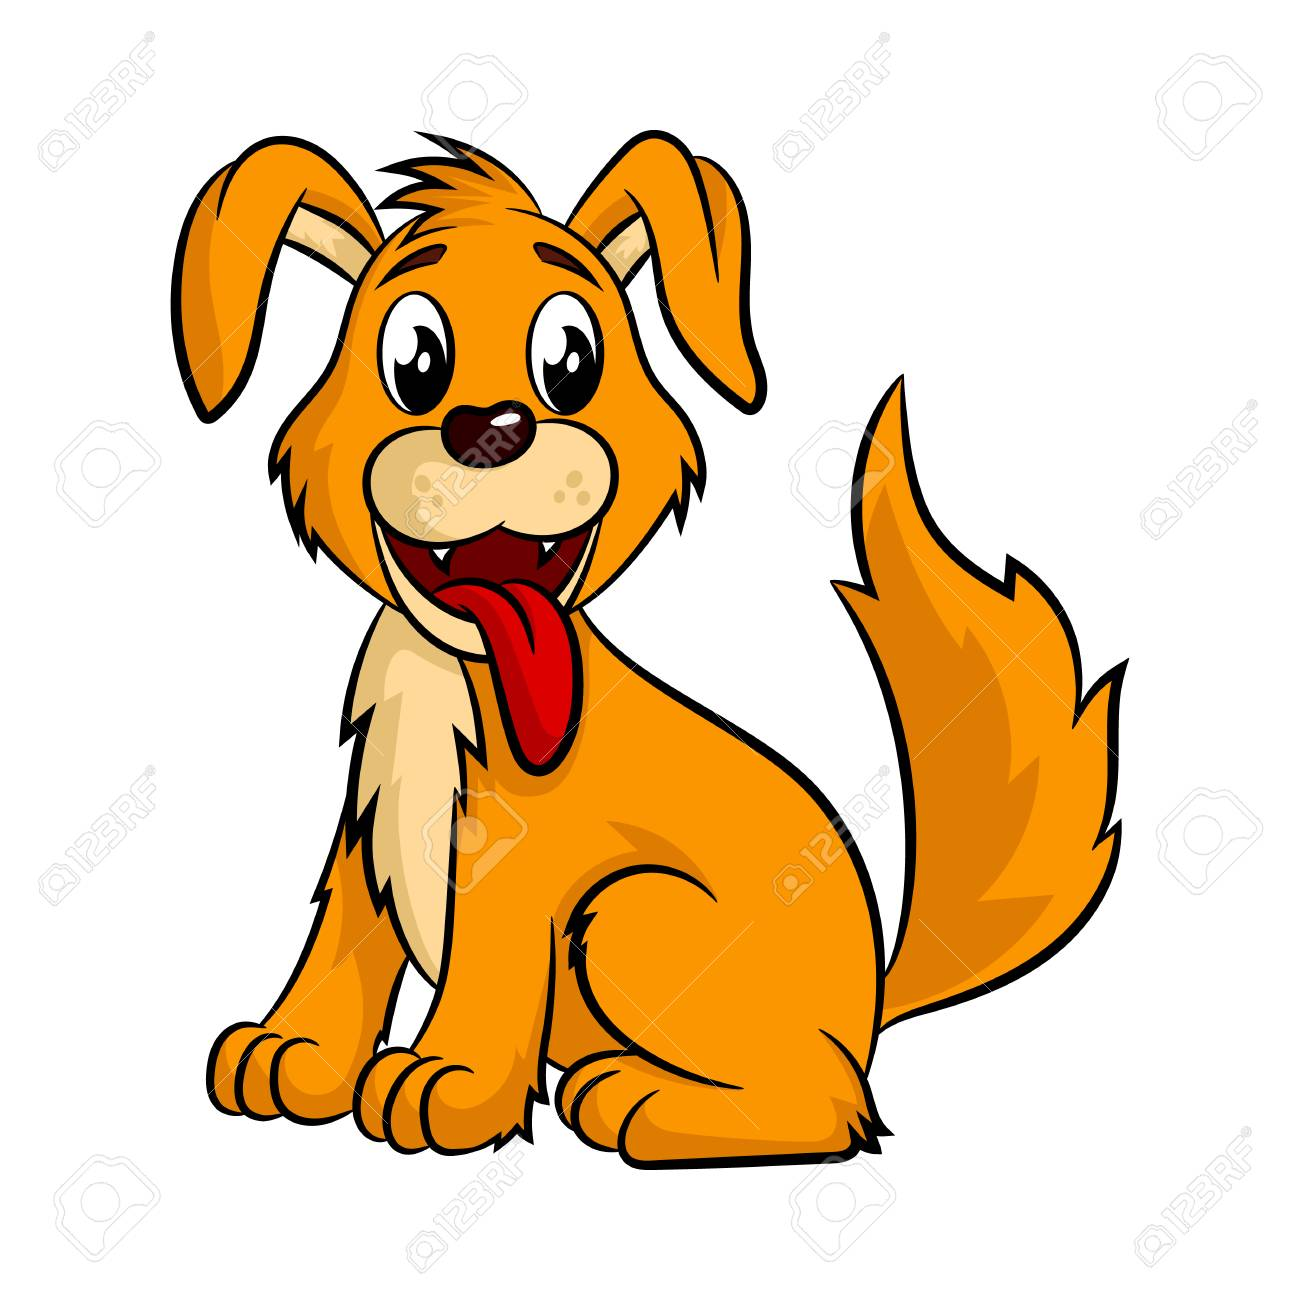 cute cartoon dog vector illustration isolated on white background rh 123rf com dog vector free dog vector free